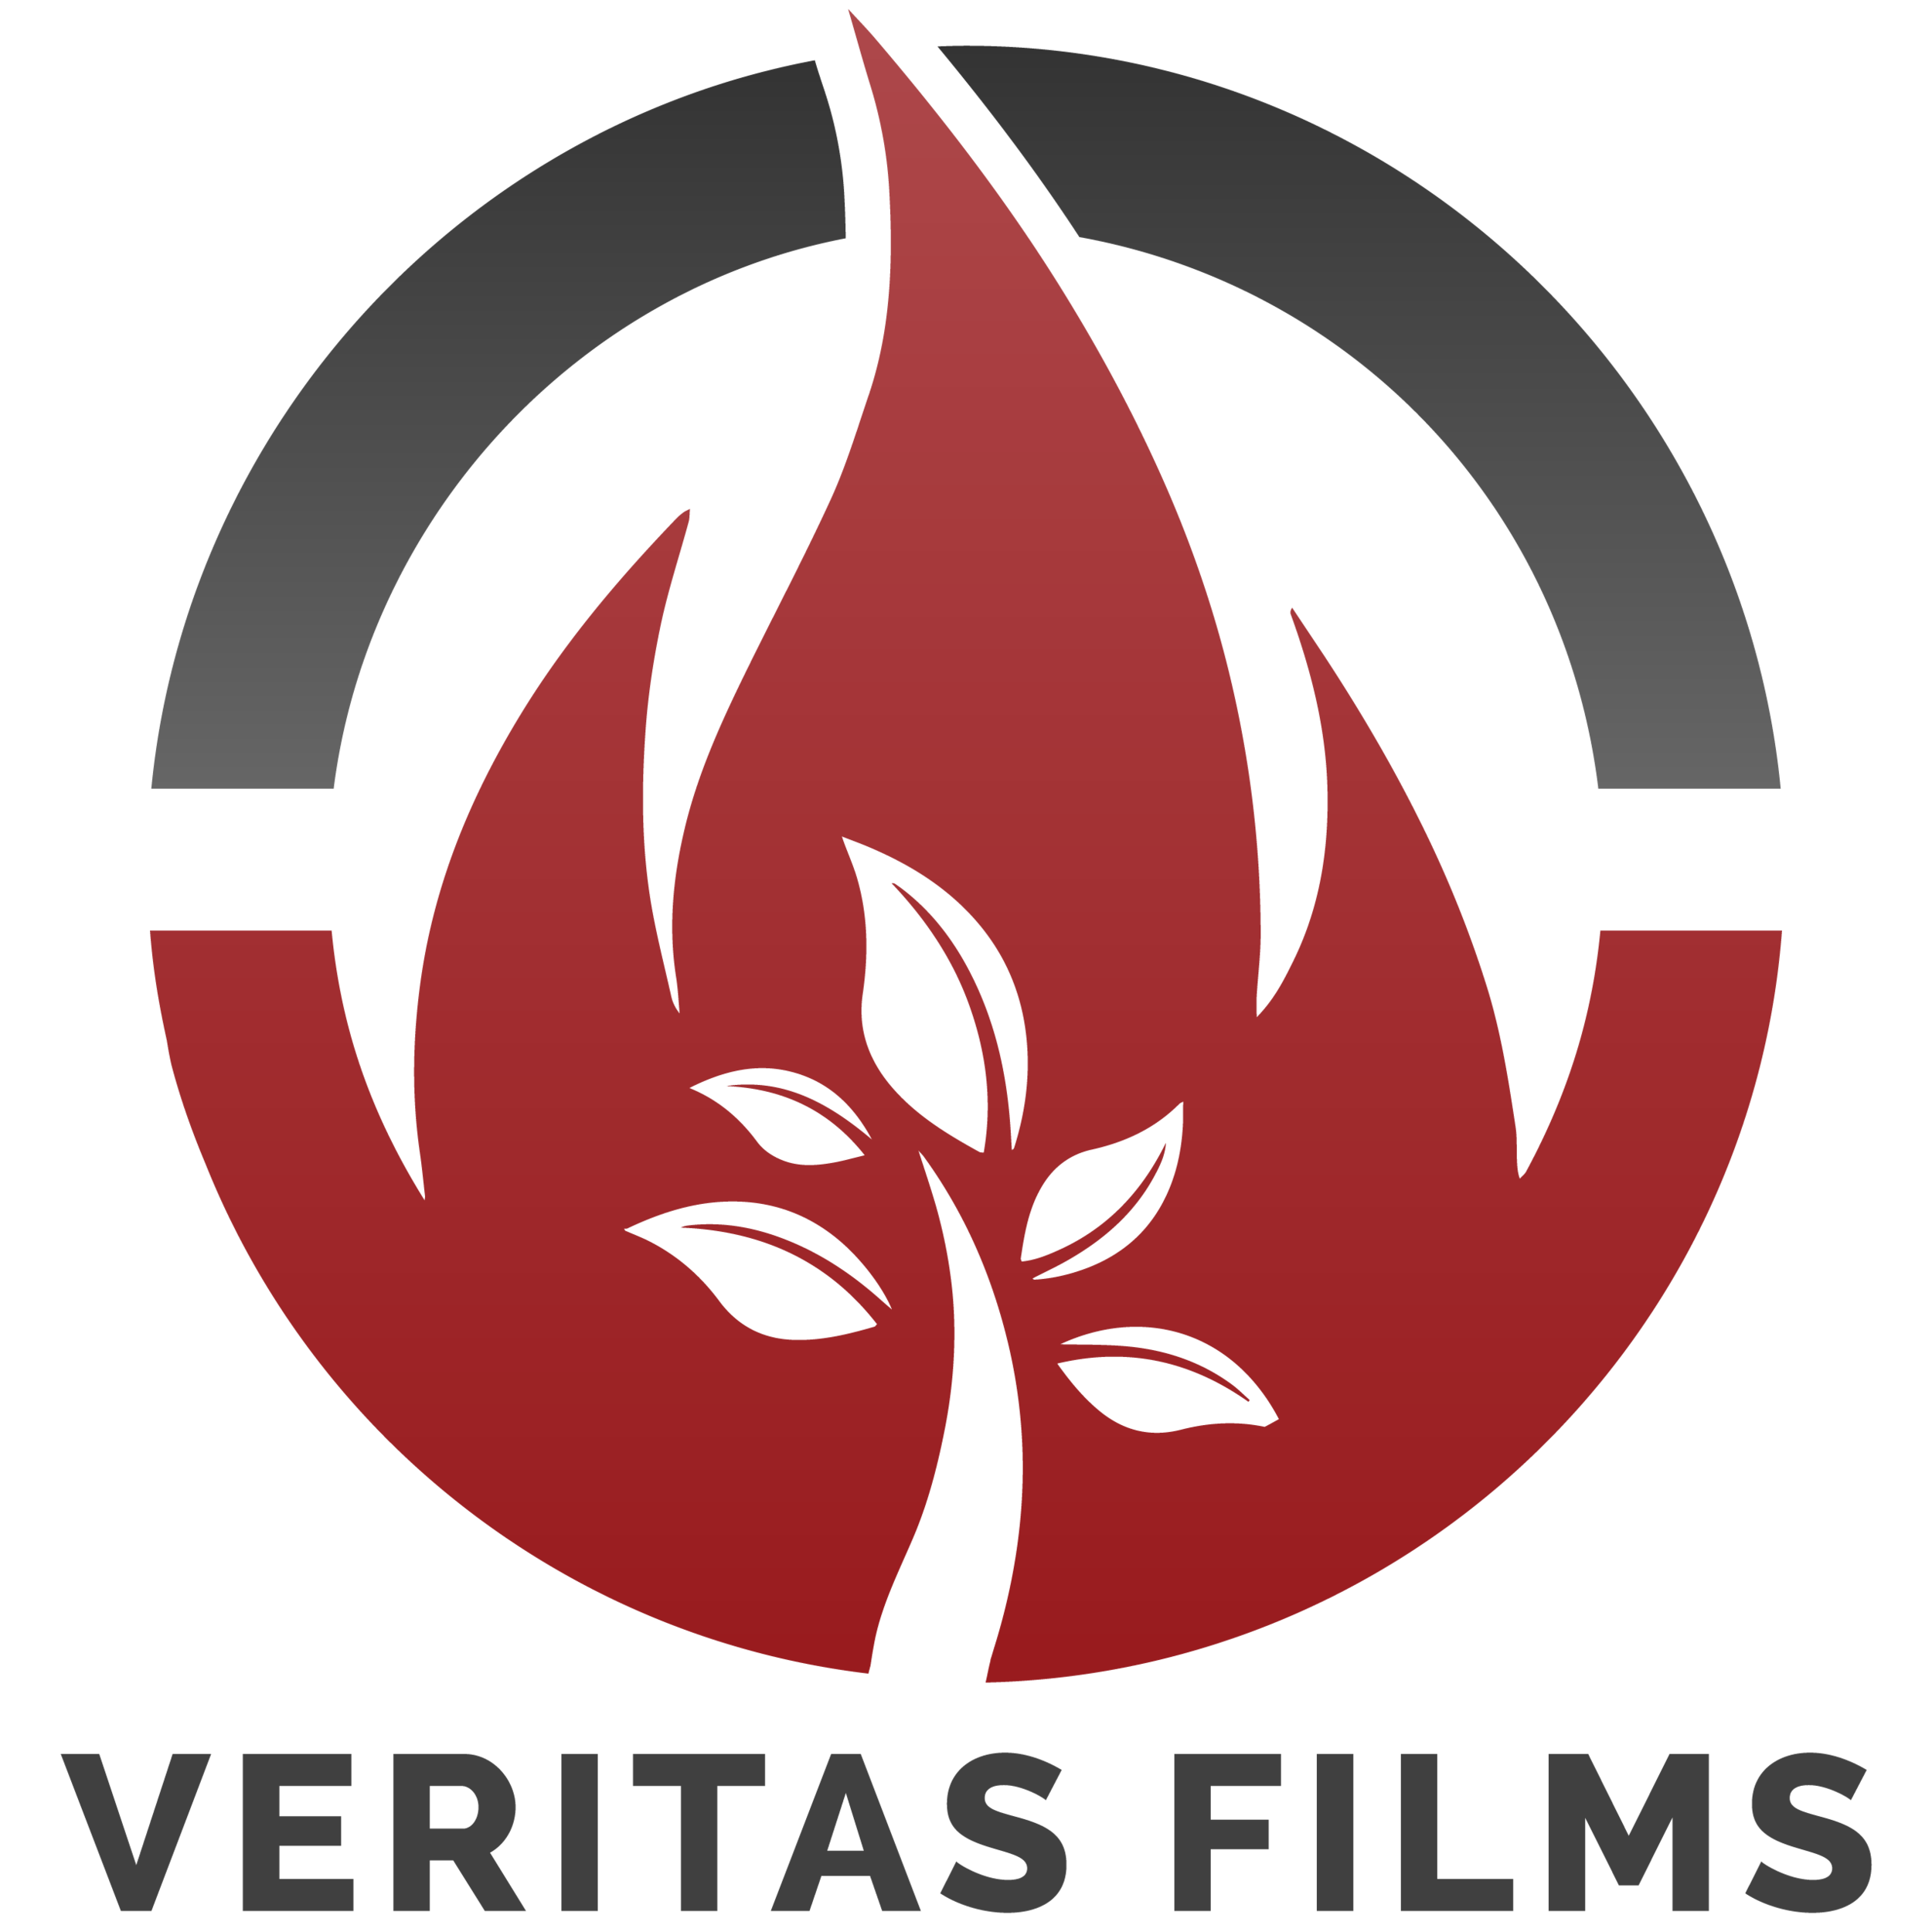 VERITAS LOGO (OFFICIAL 5.18).png